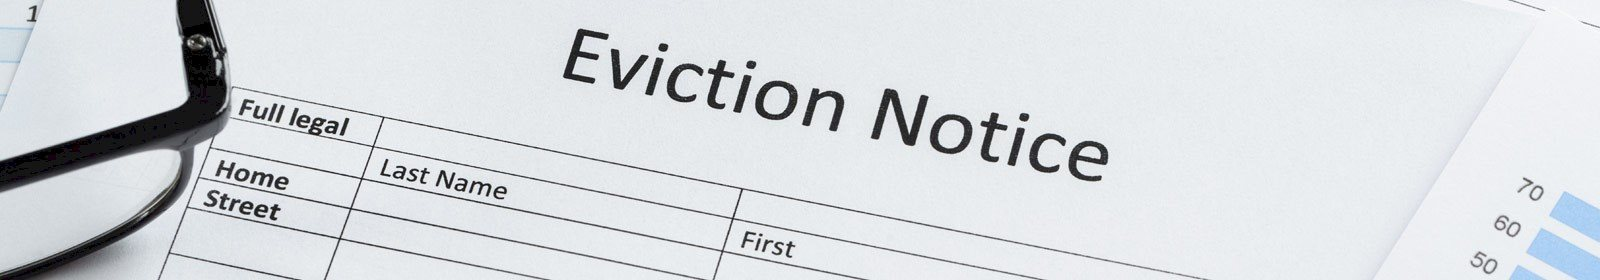 How to lawfully evict a non-paying tenant